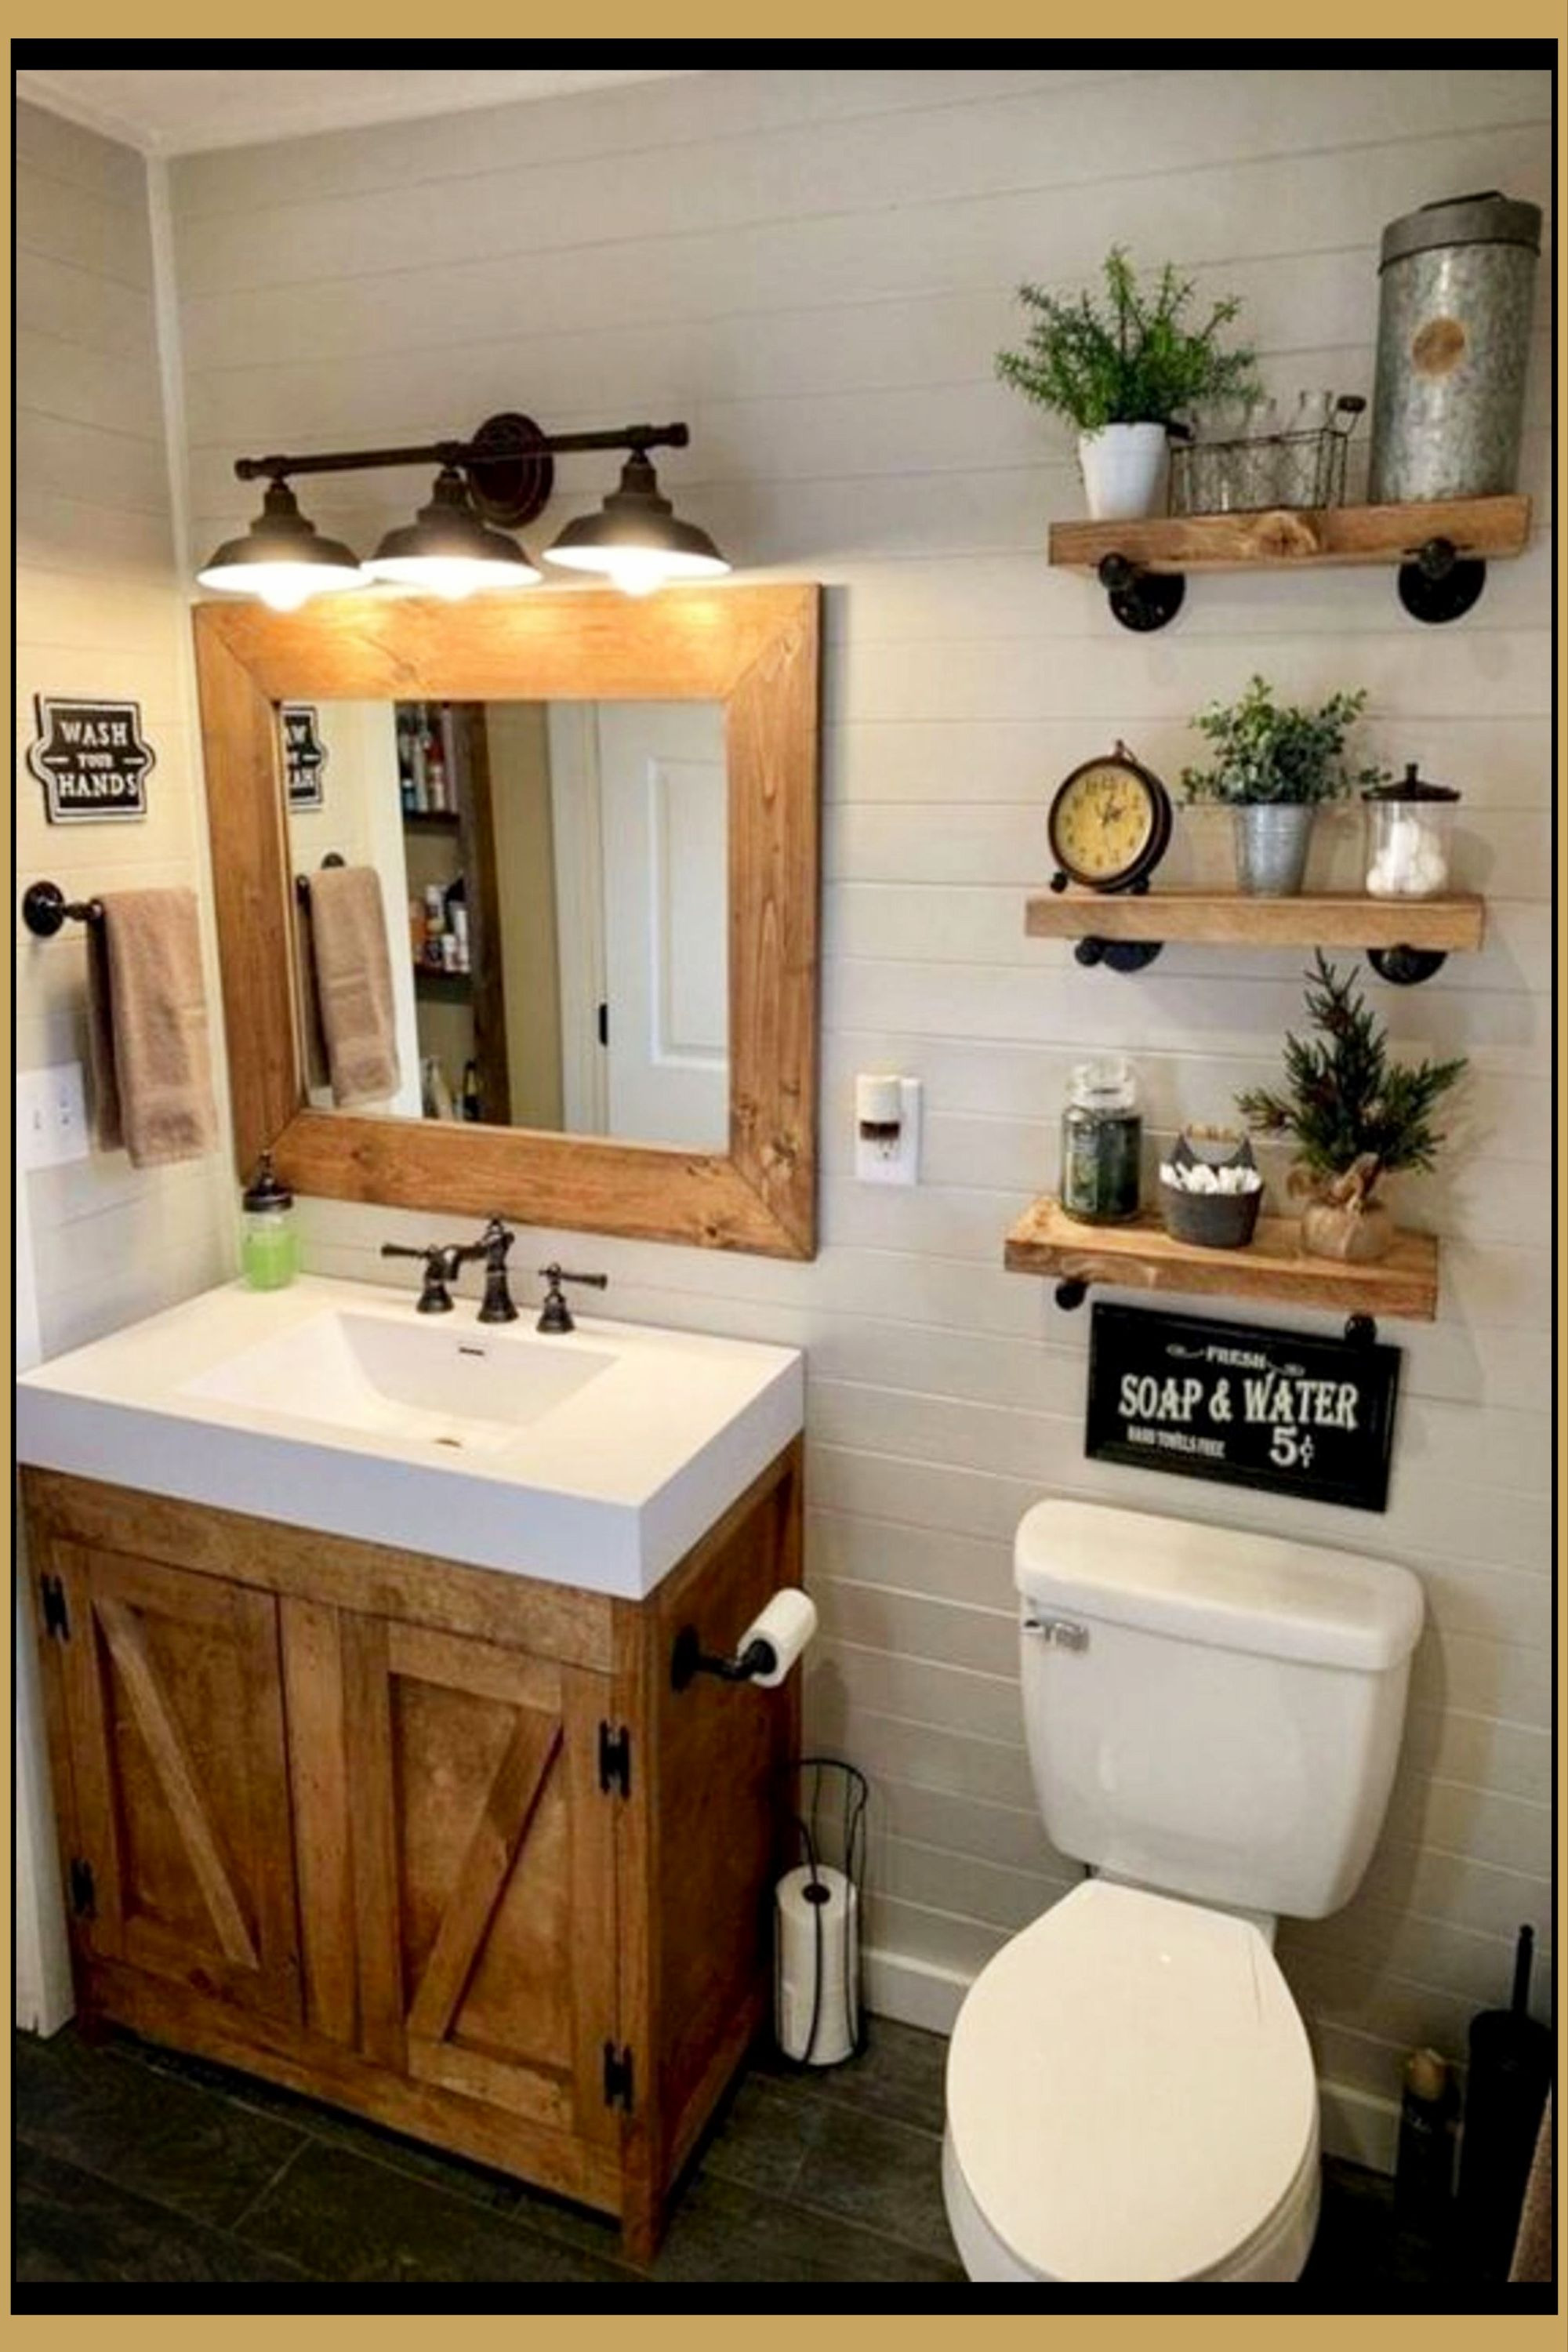 Outhouses Bathroom Decor Lovely Country Outhouse Bathroom Decorating Ideas